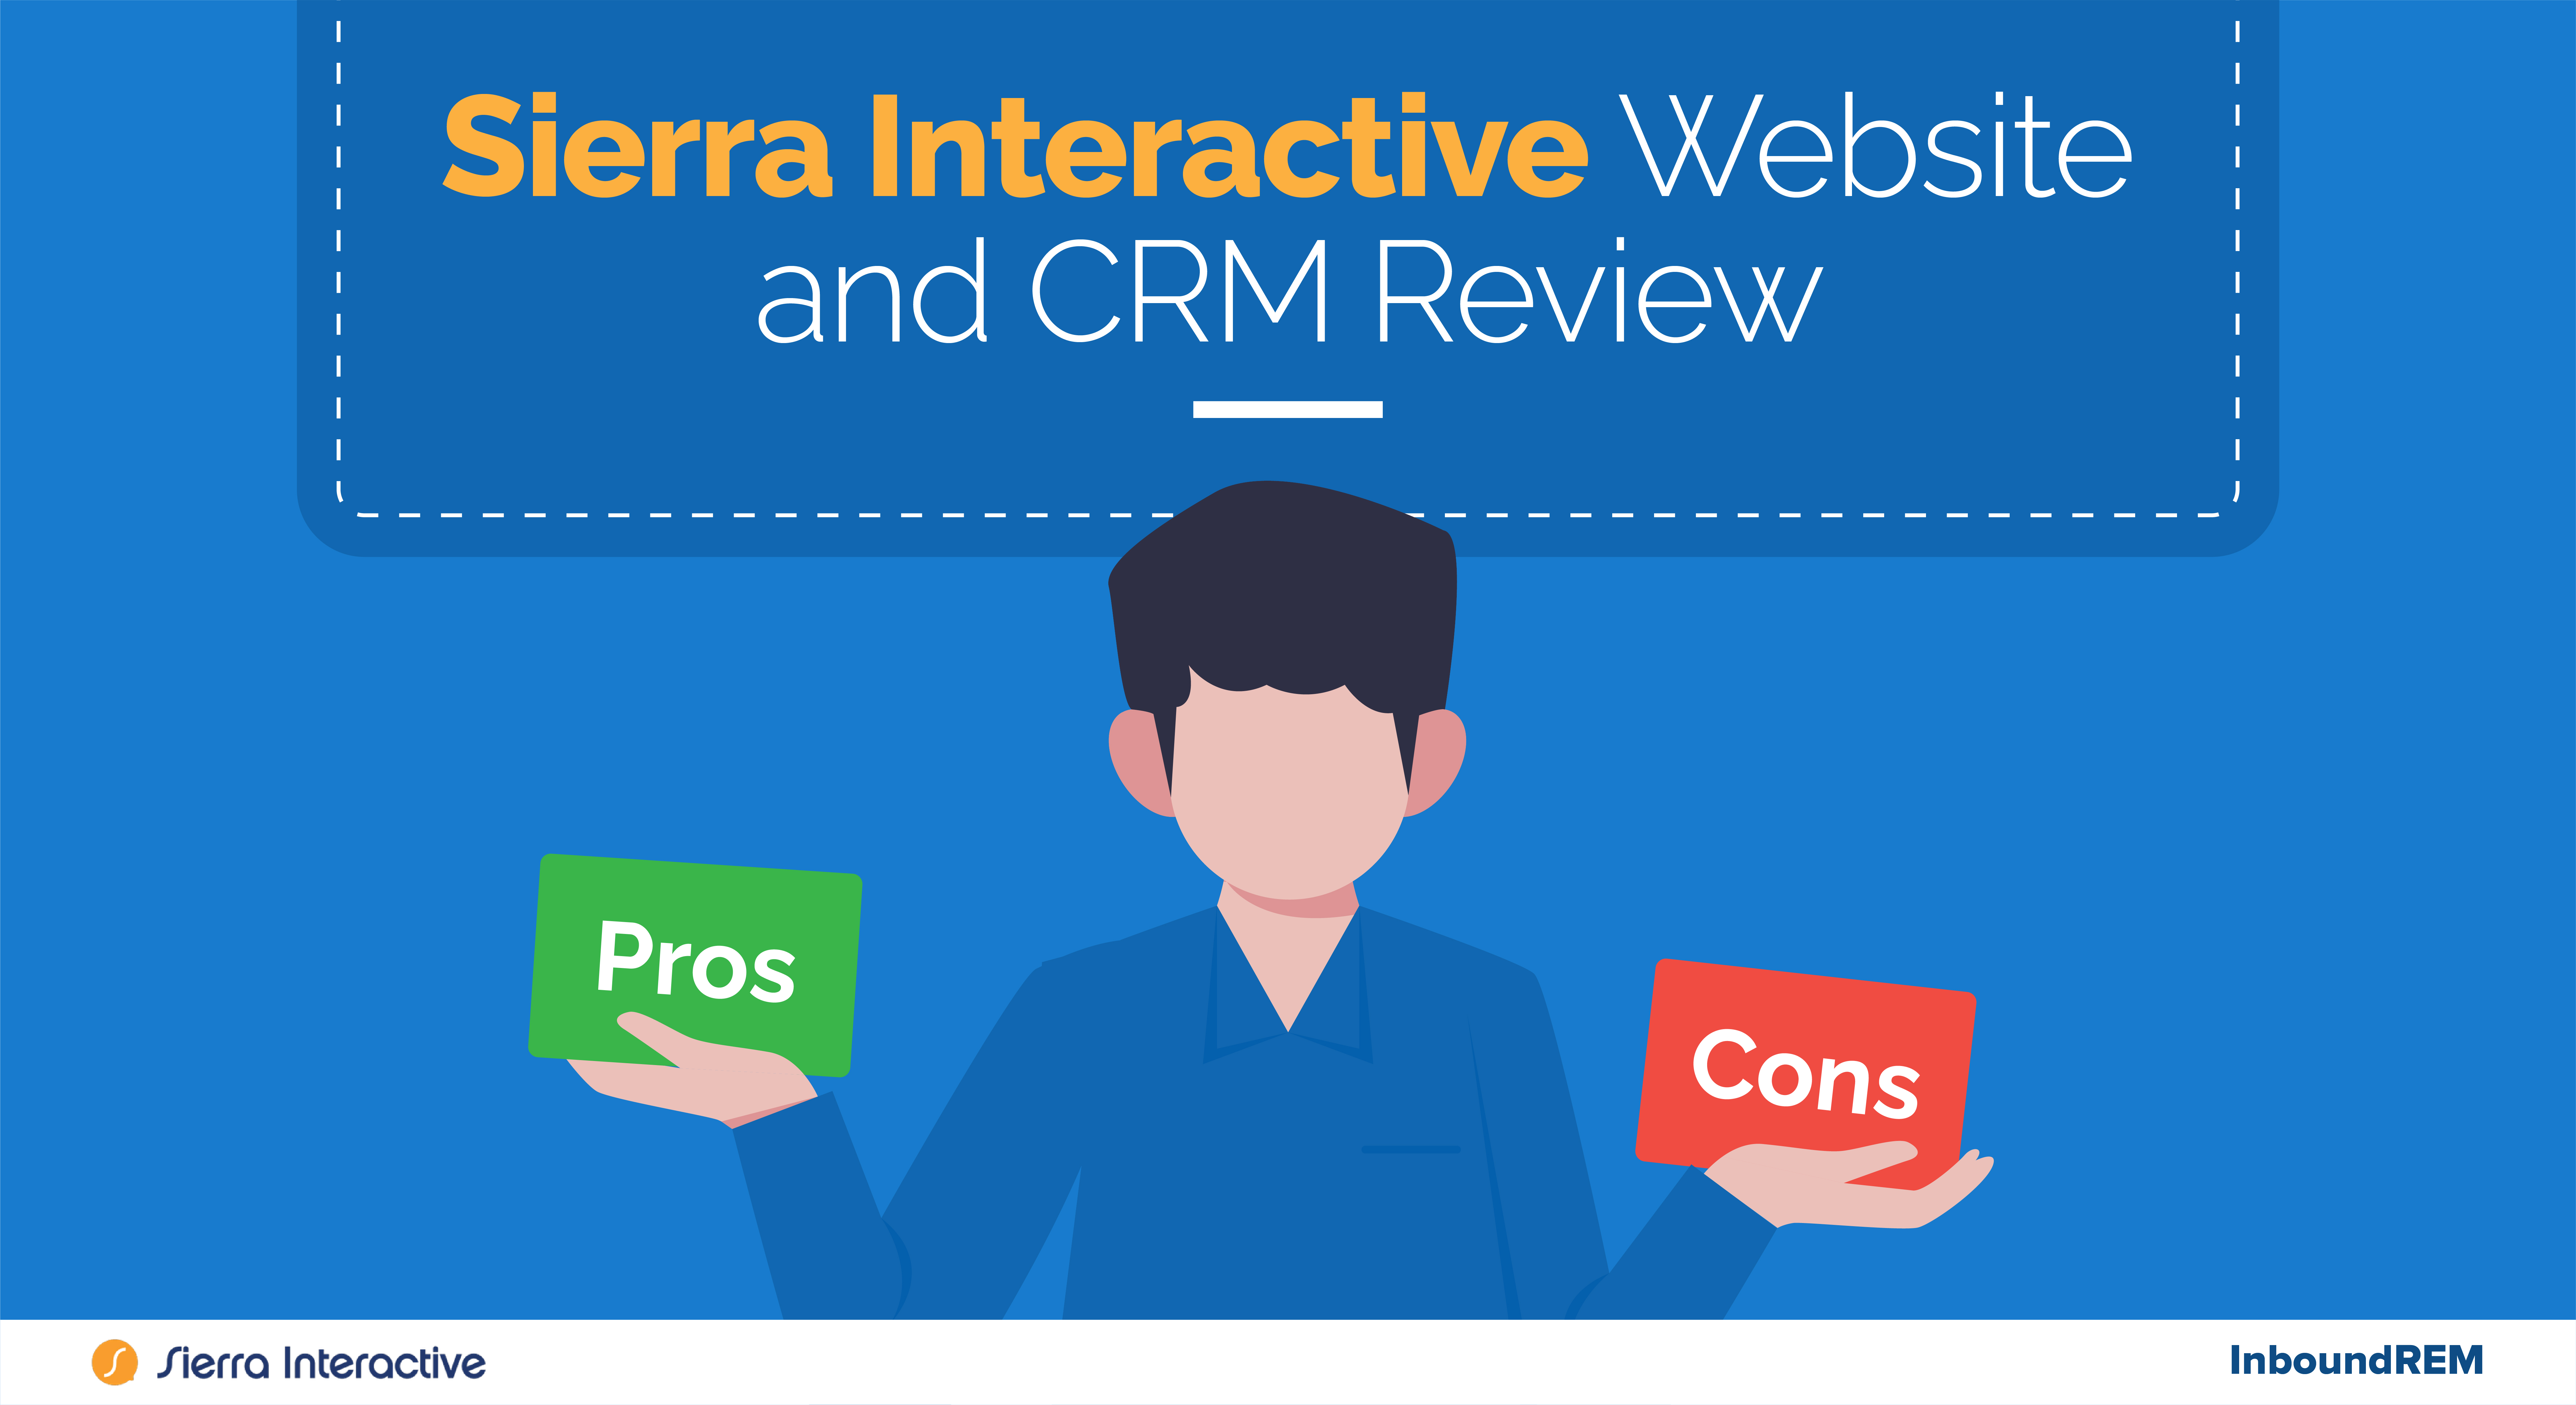 Sierra Interactive Website and CRM Review